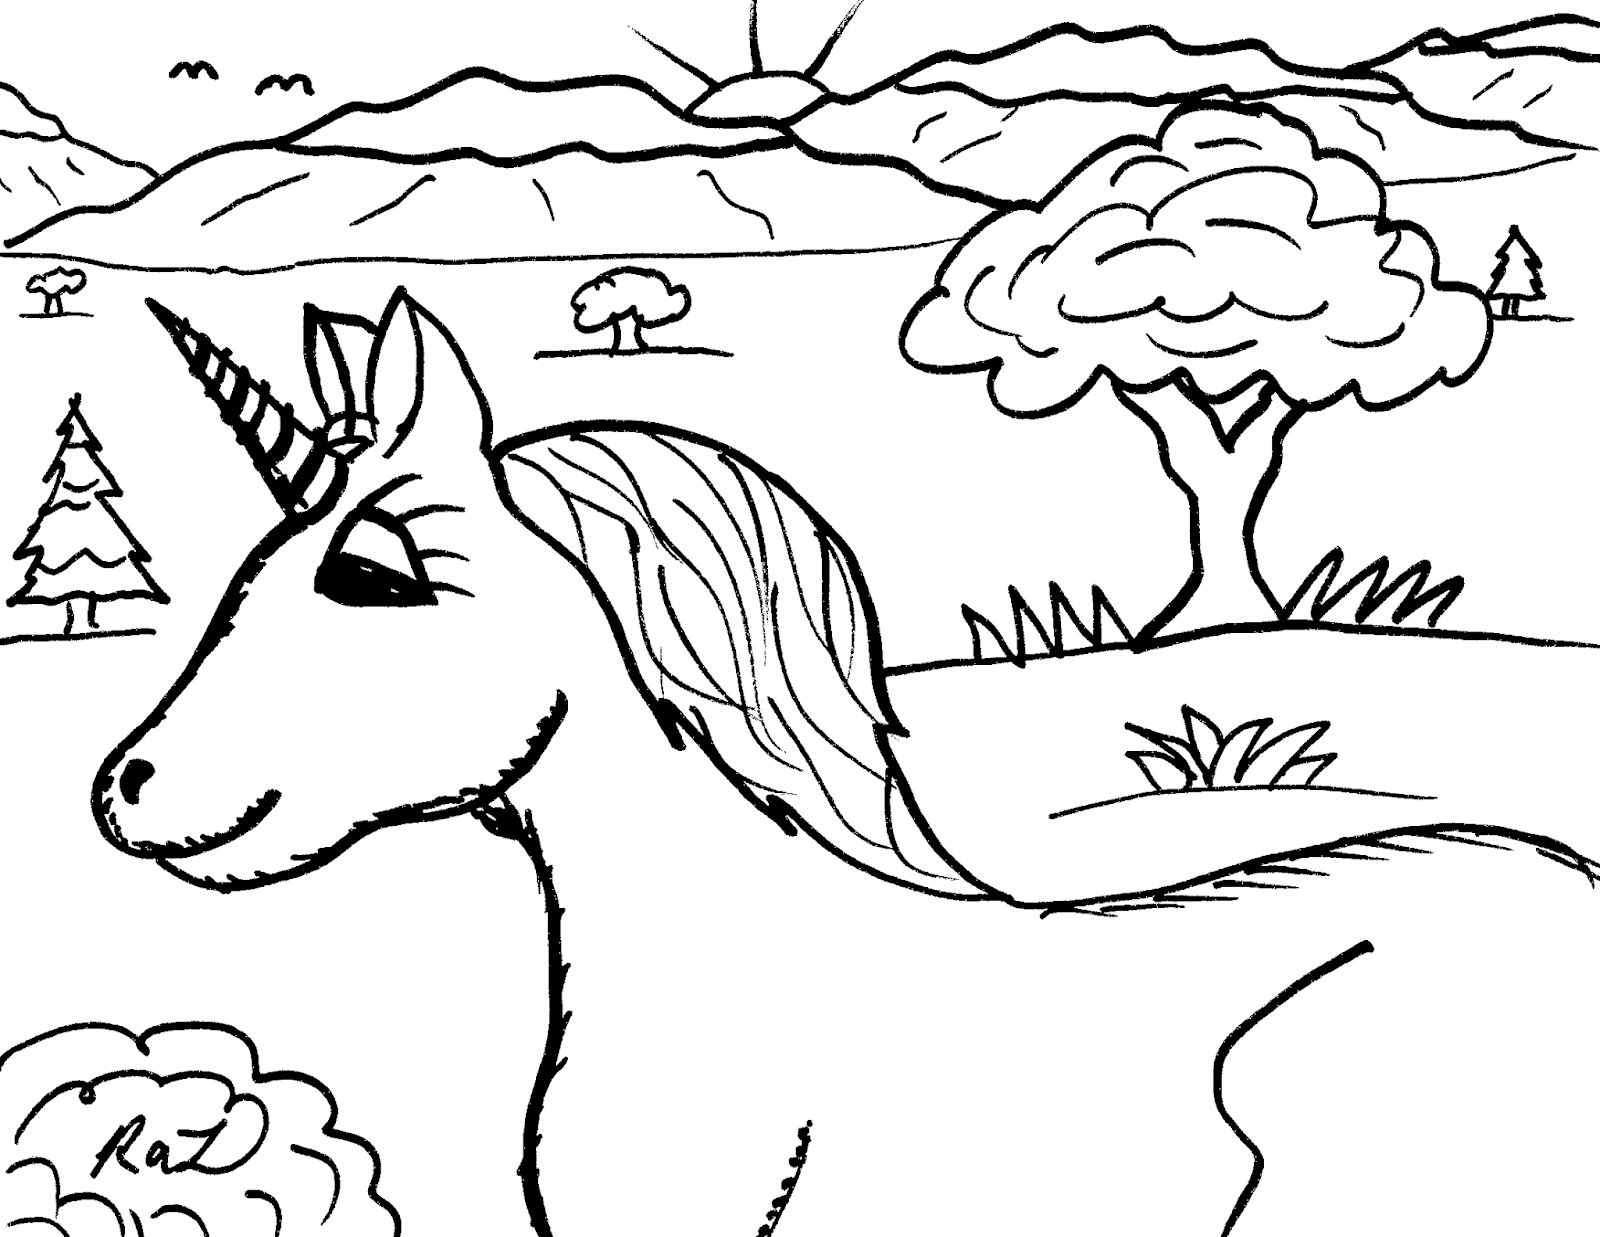 1600x1237 Robin's Great Coloring Pages Unicorn Cartoon Drawings To Color